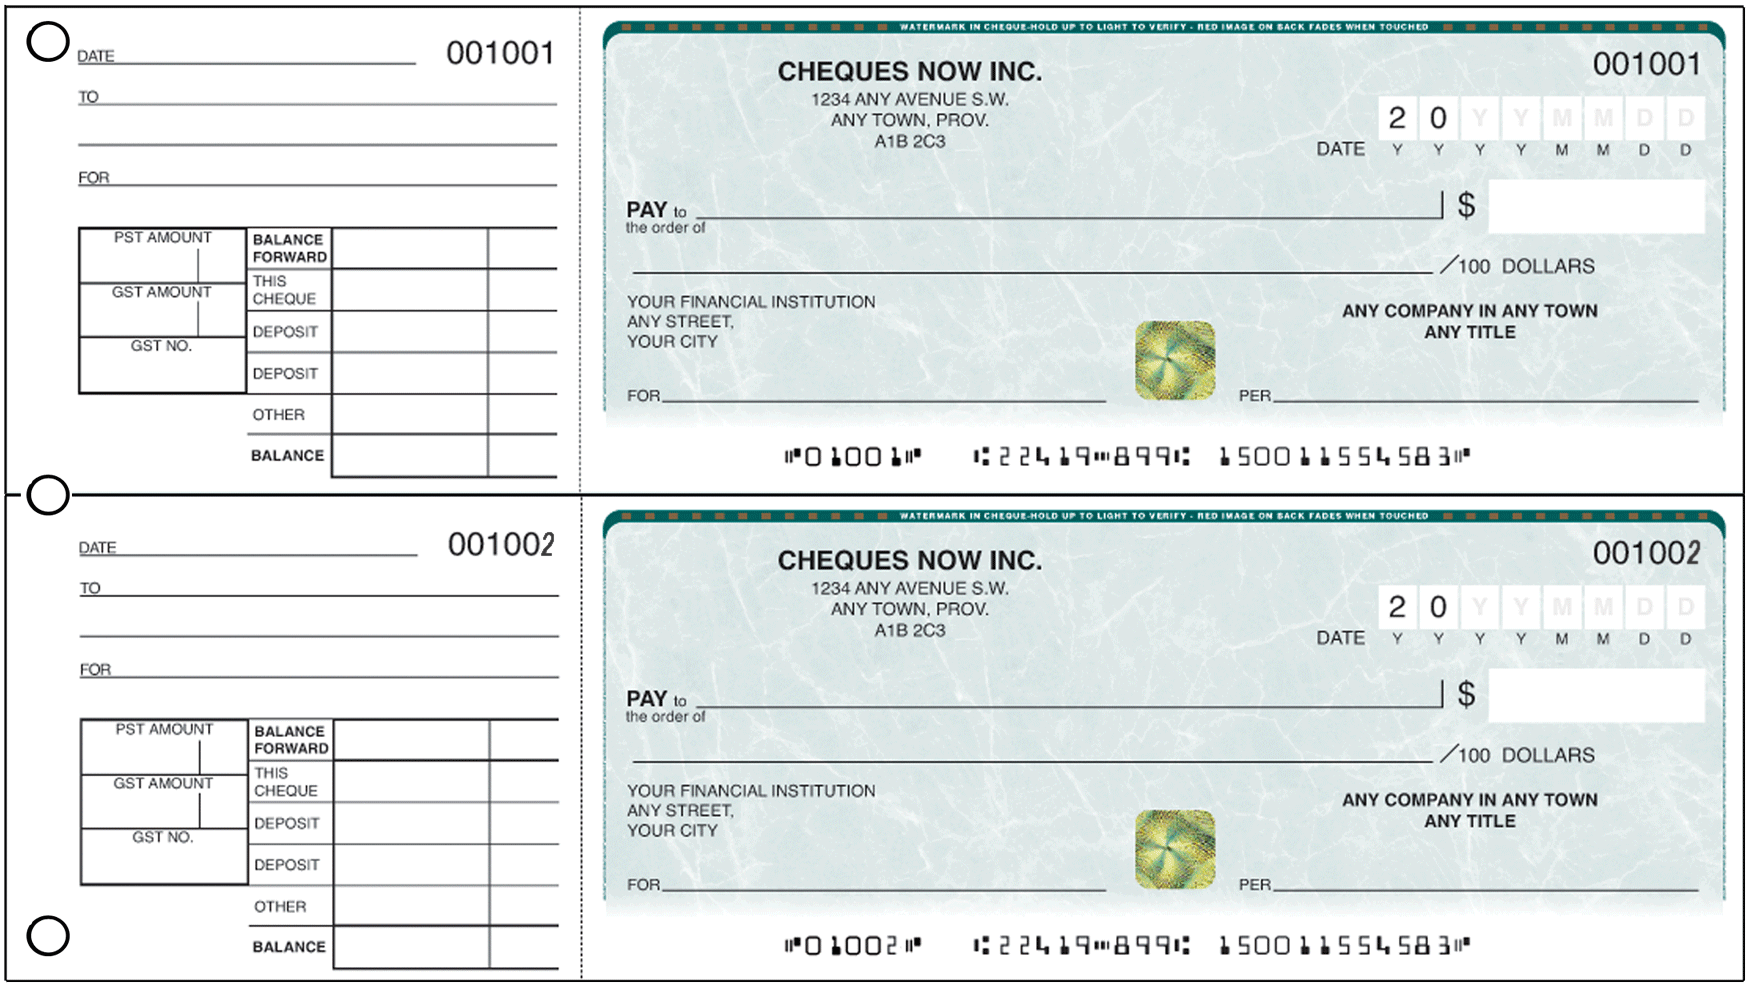 Cibc travellers cheques fee